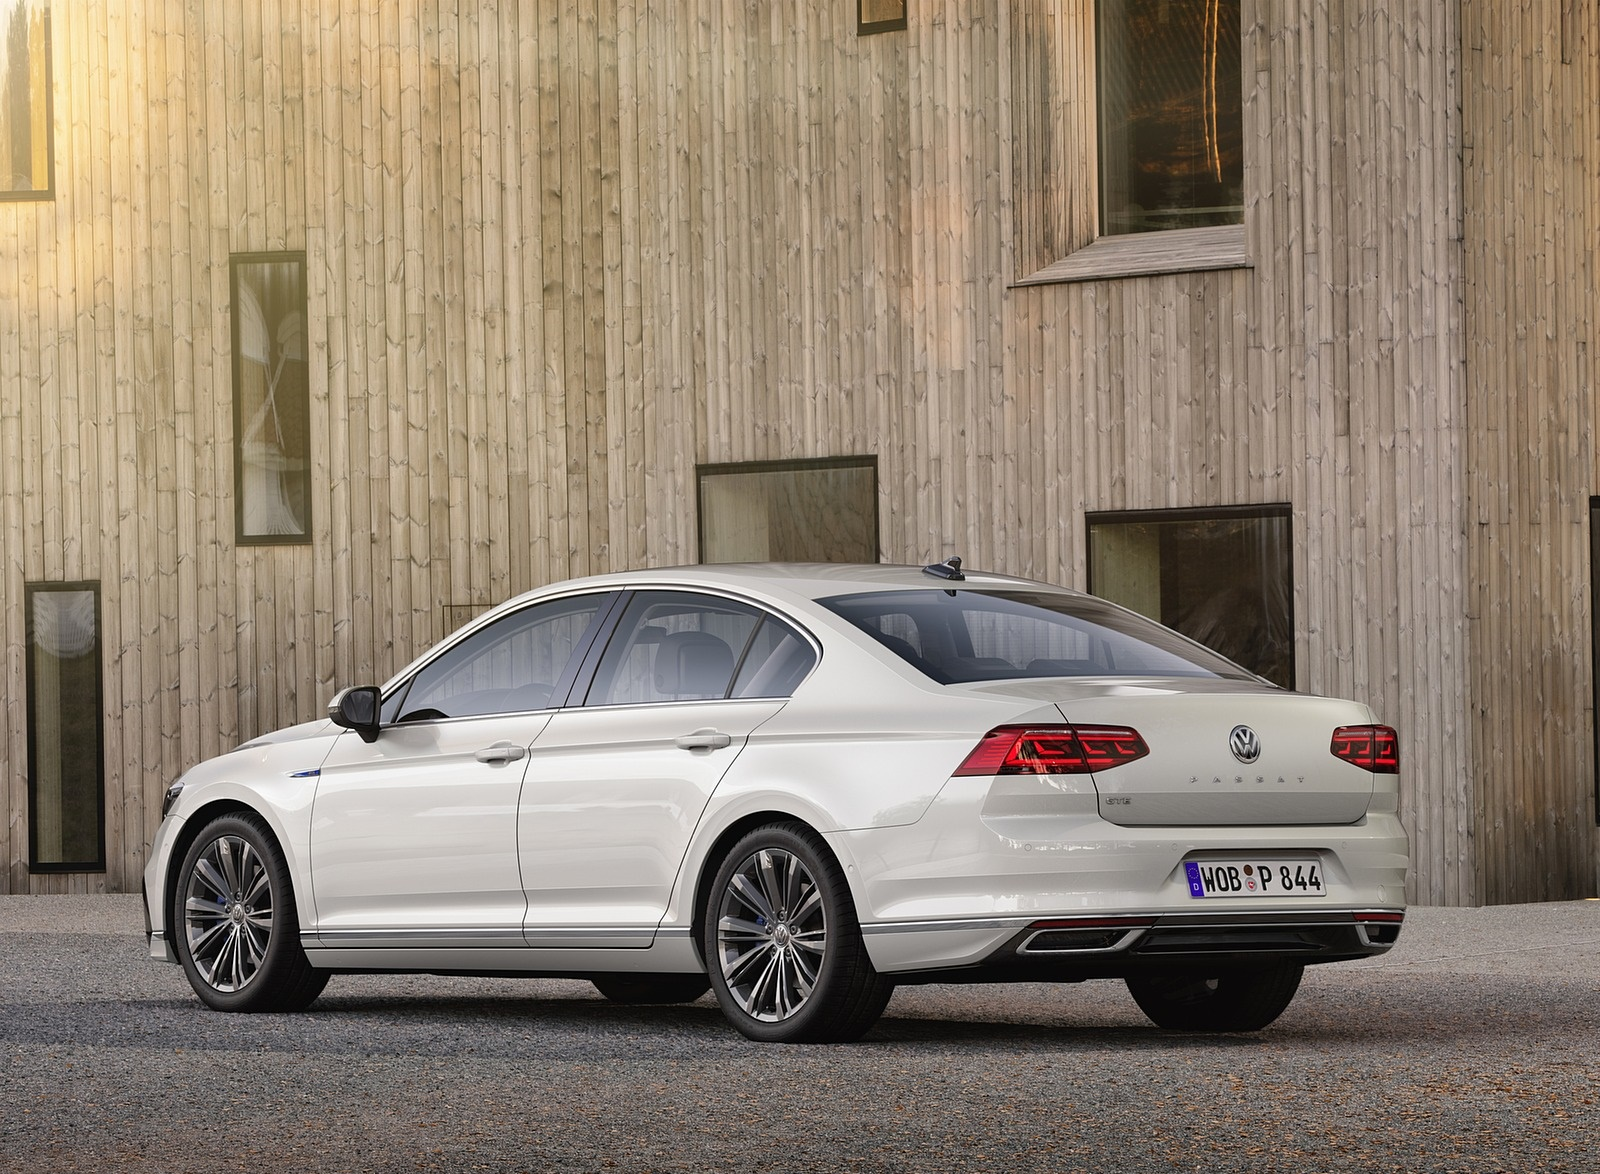 2020 Volkswagen Passat GTE Sedan (EU-Spec) Rear Three-Quarter Wallpapers (9)